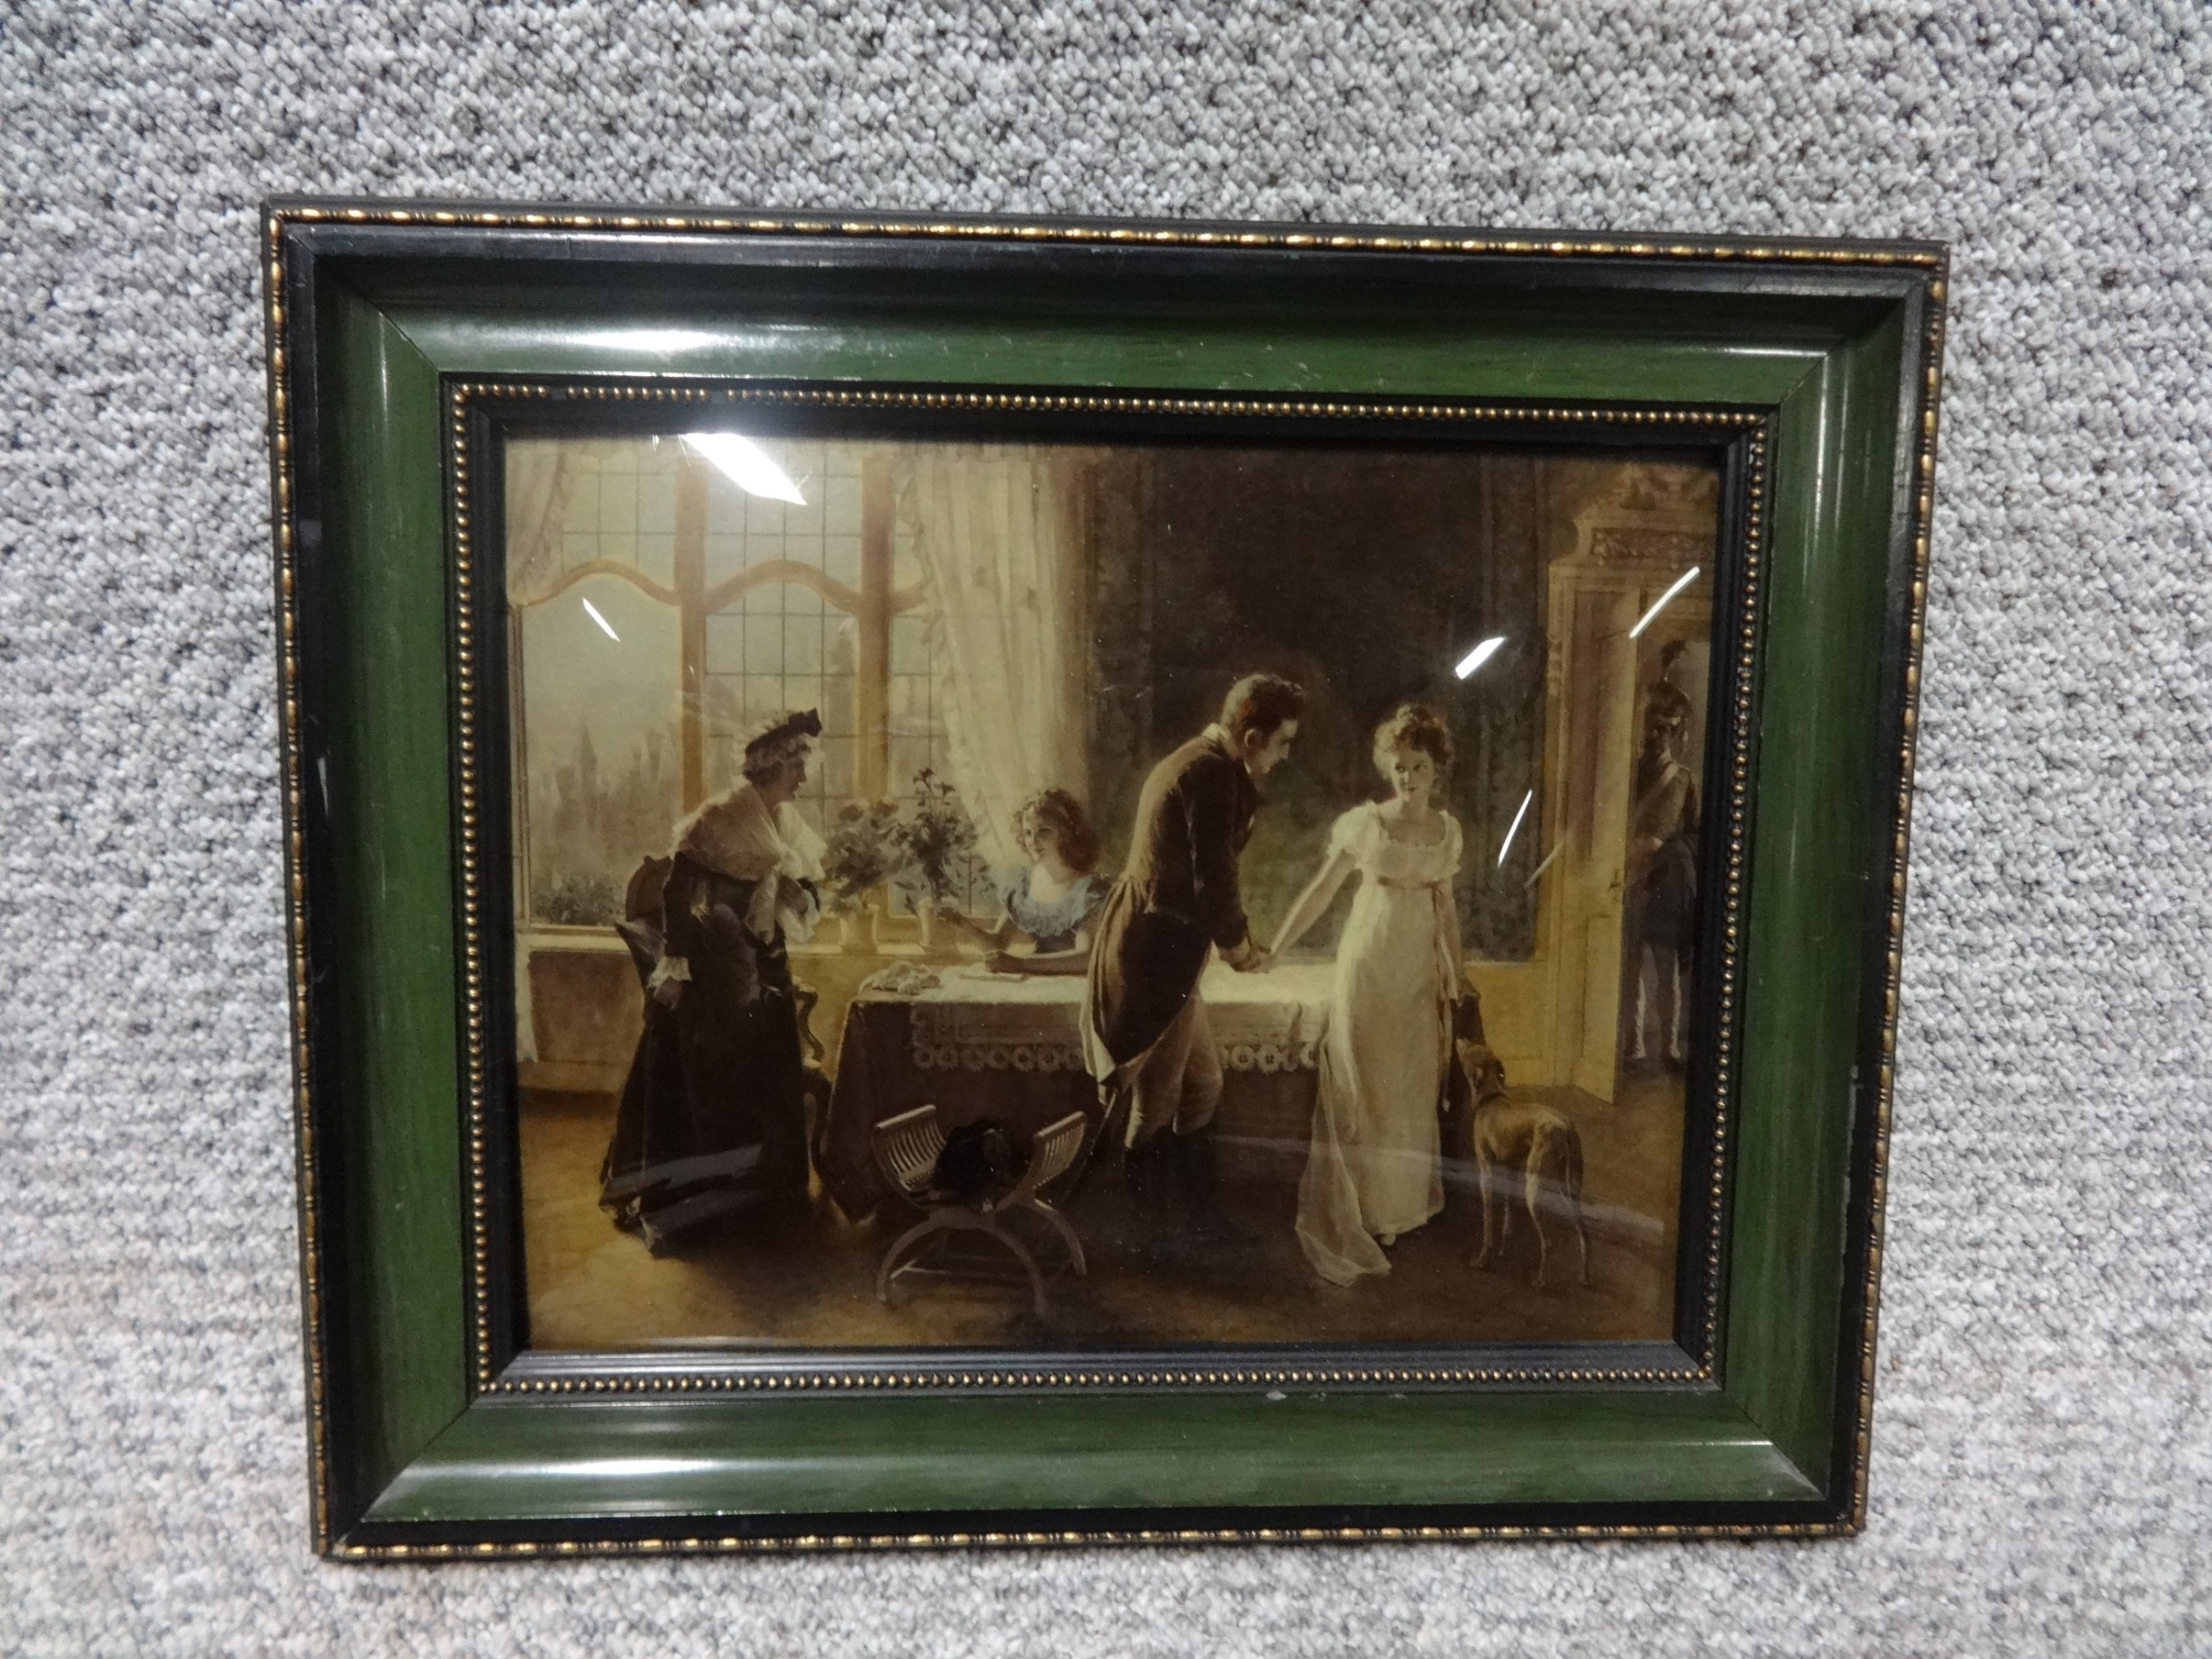 c19th chrystoleum of a courtship